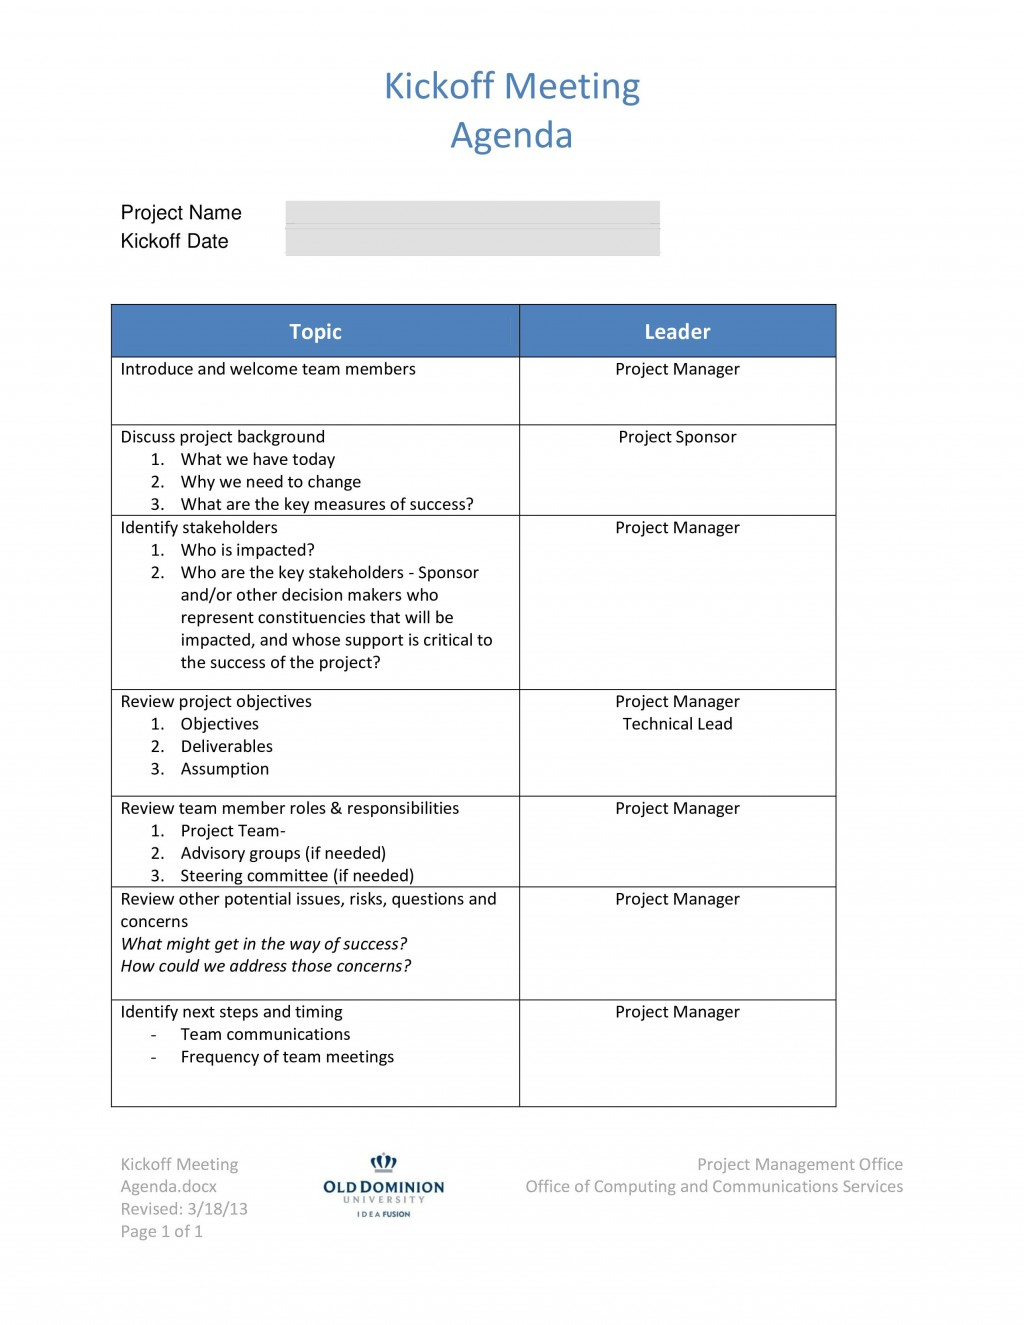 002 Singular Project Kickoff Meeting Template Photo  Management Agenda Construction Doc EmailLarge